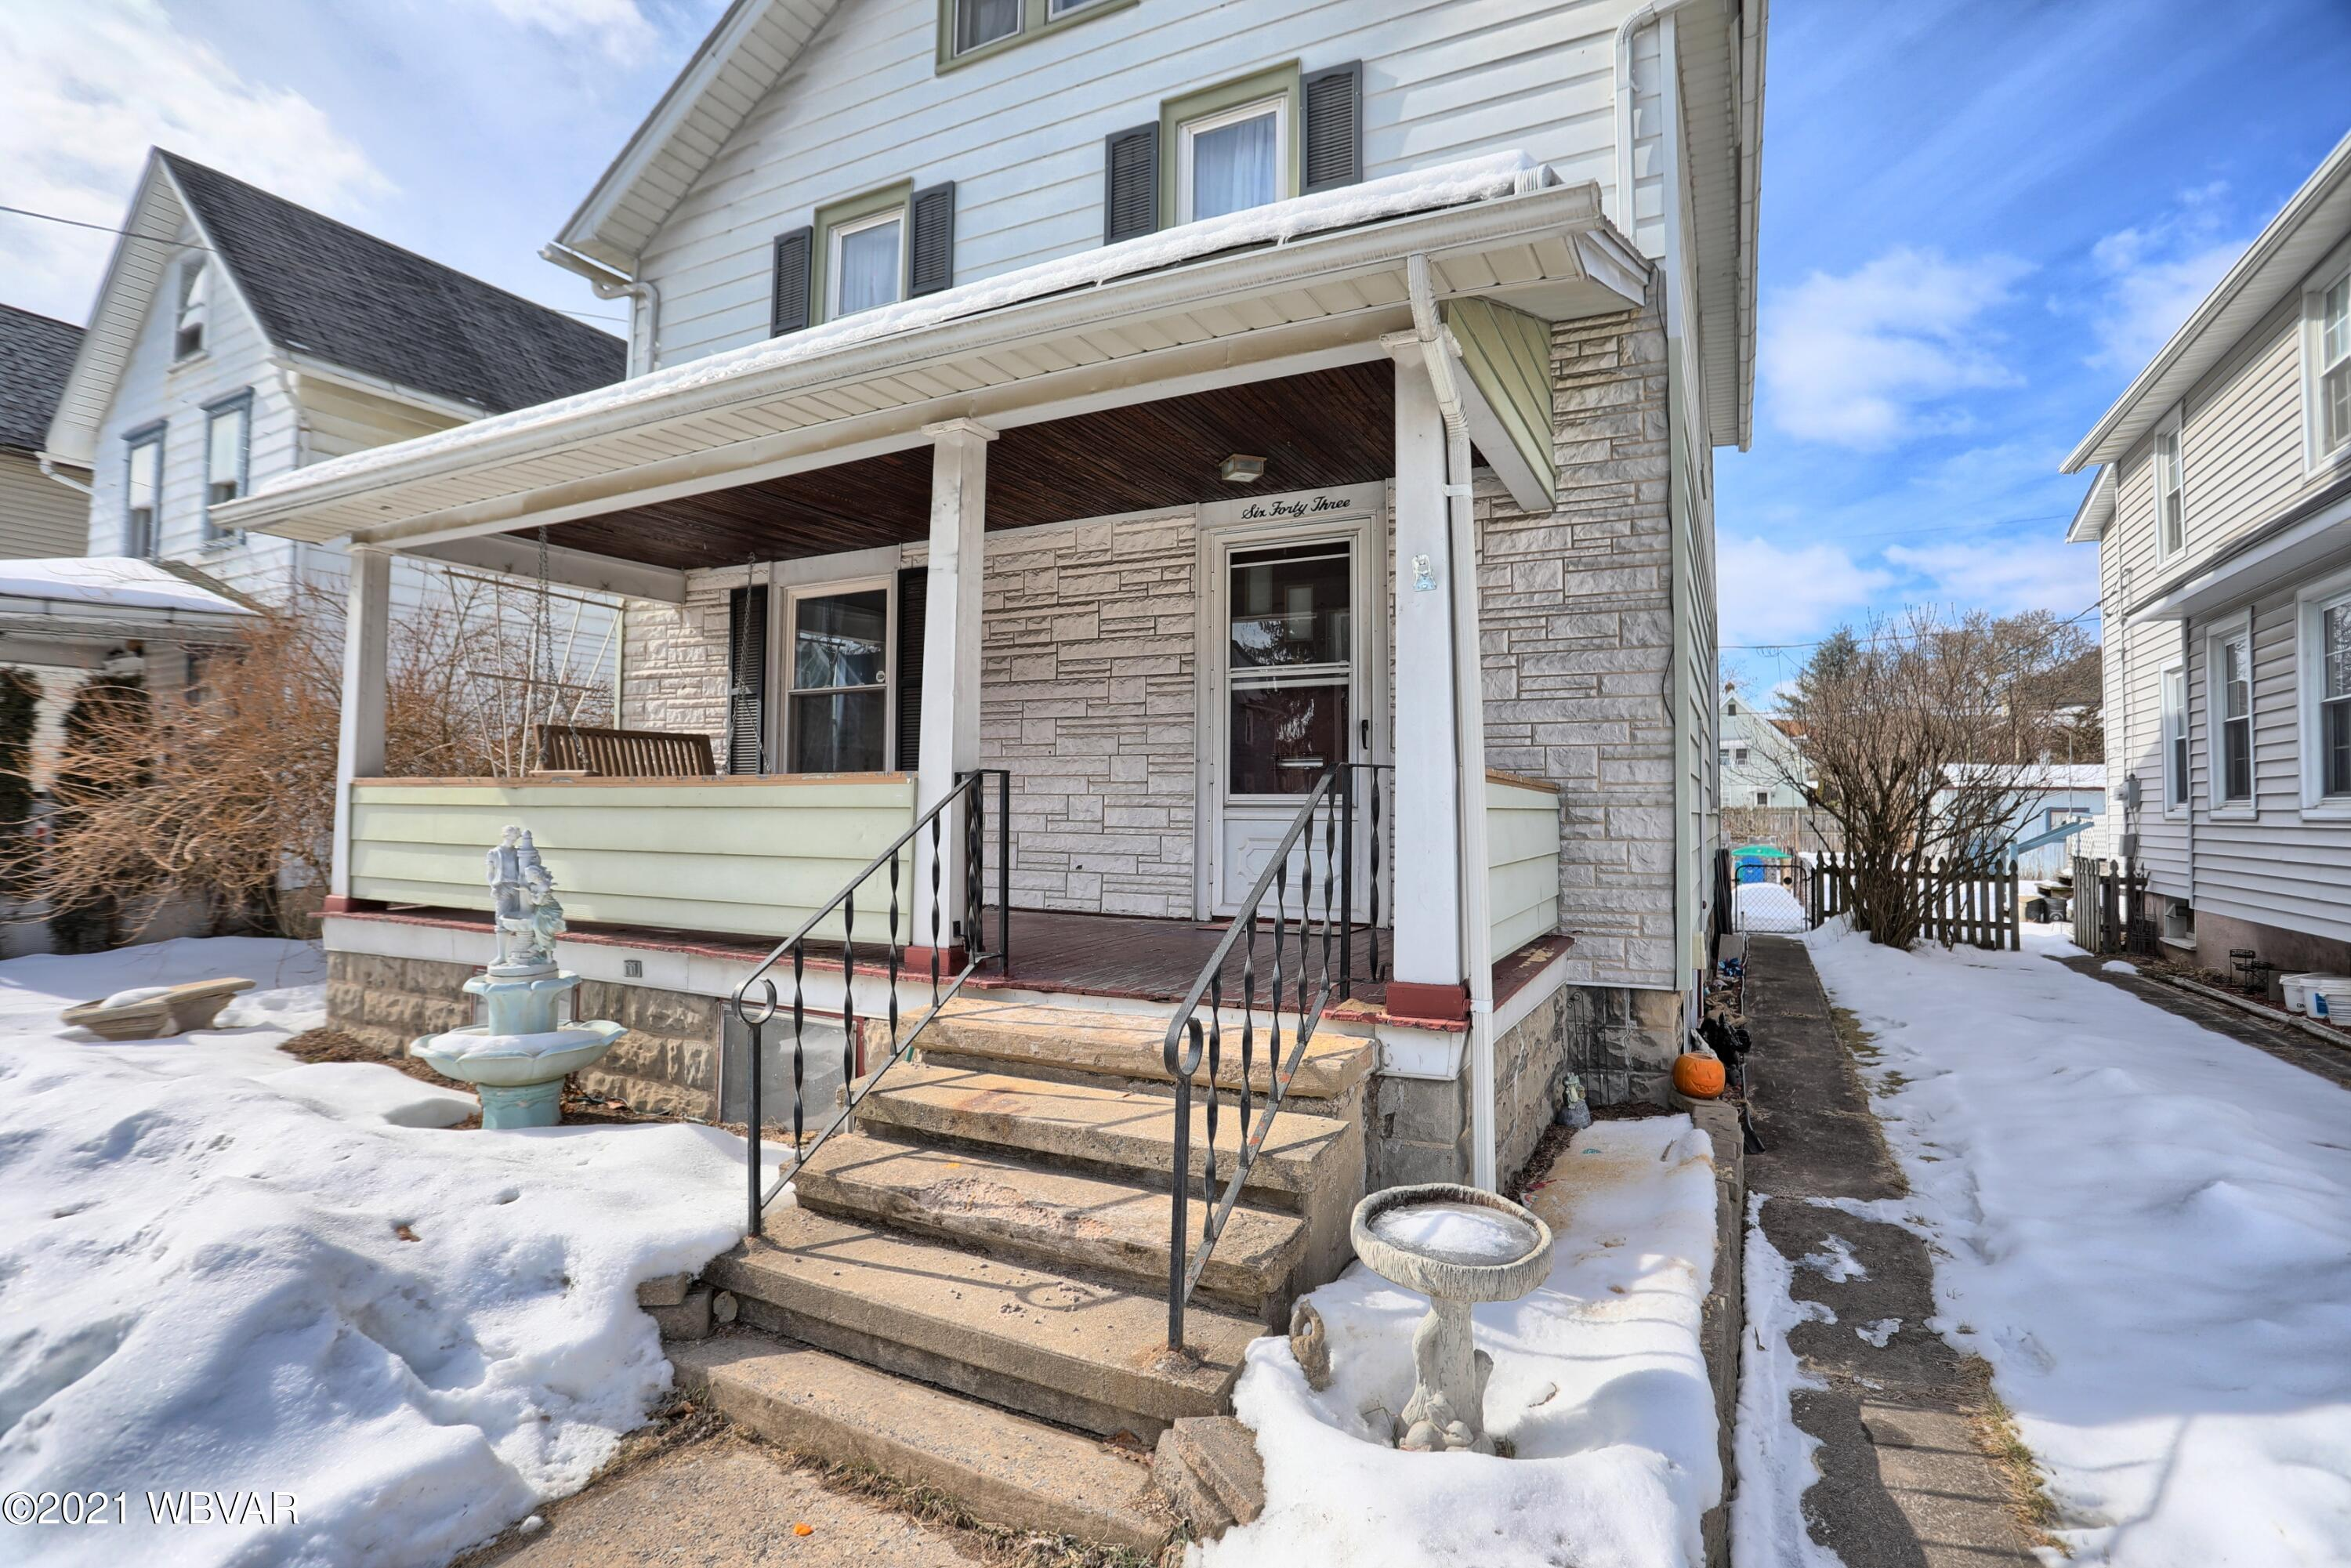 643 3RD AVENUE, Williamsport, PA 17701, 3 Bedrooms Bedrooms, ,2 BathroomsBathrooms,Residential,For sale,3RD,WB-91907